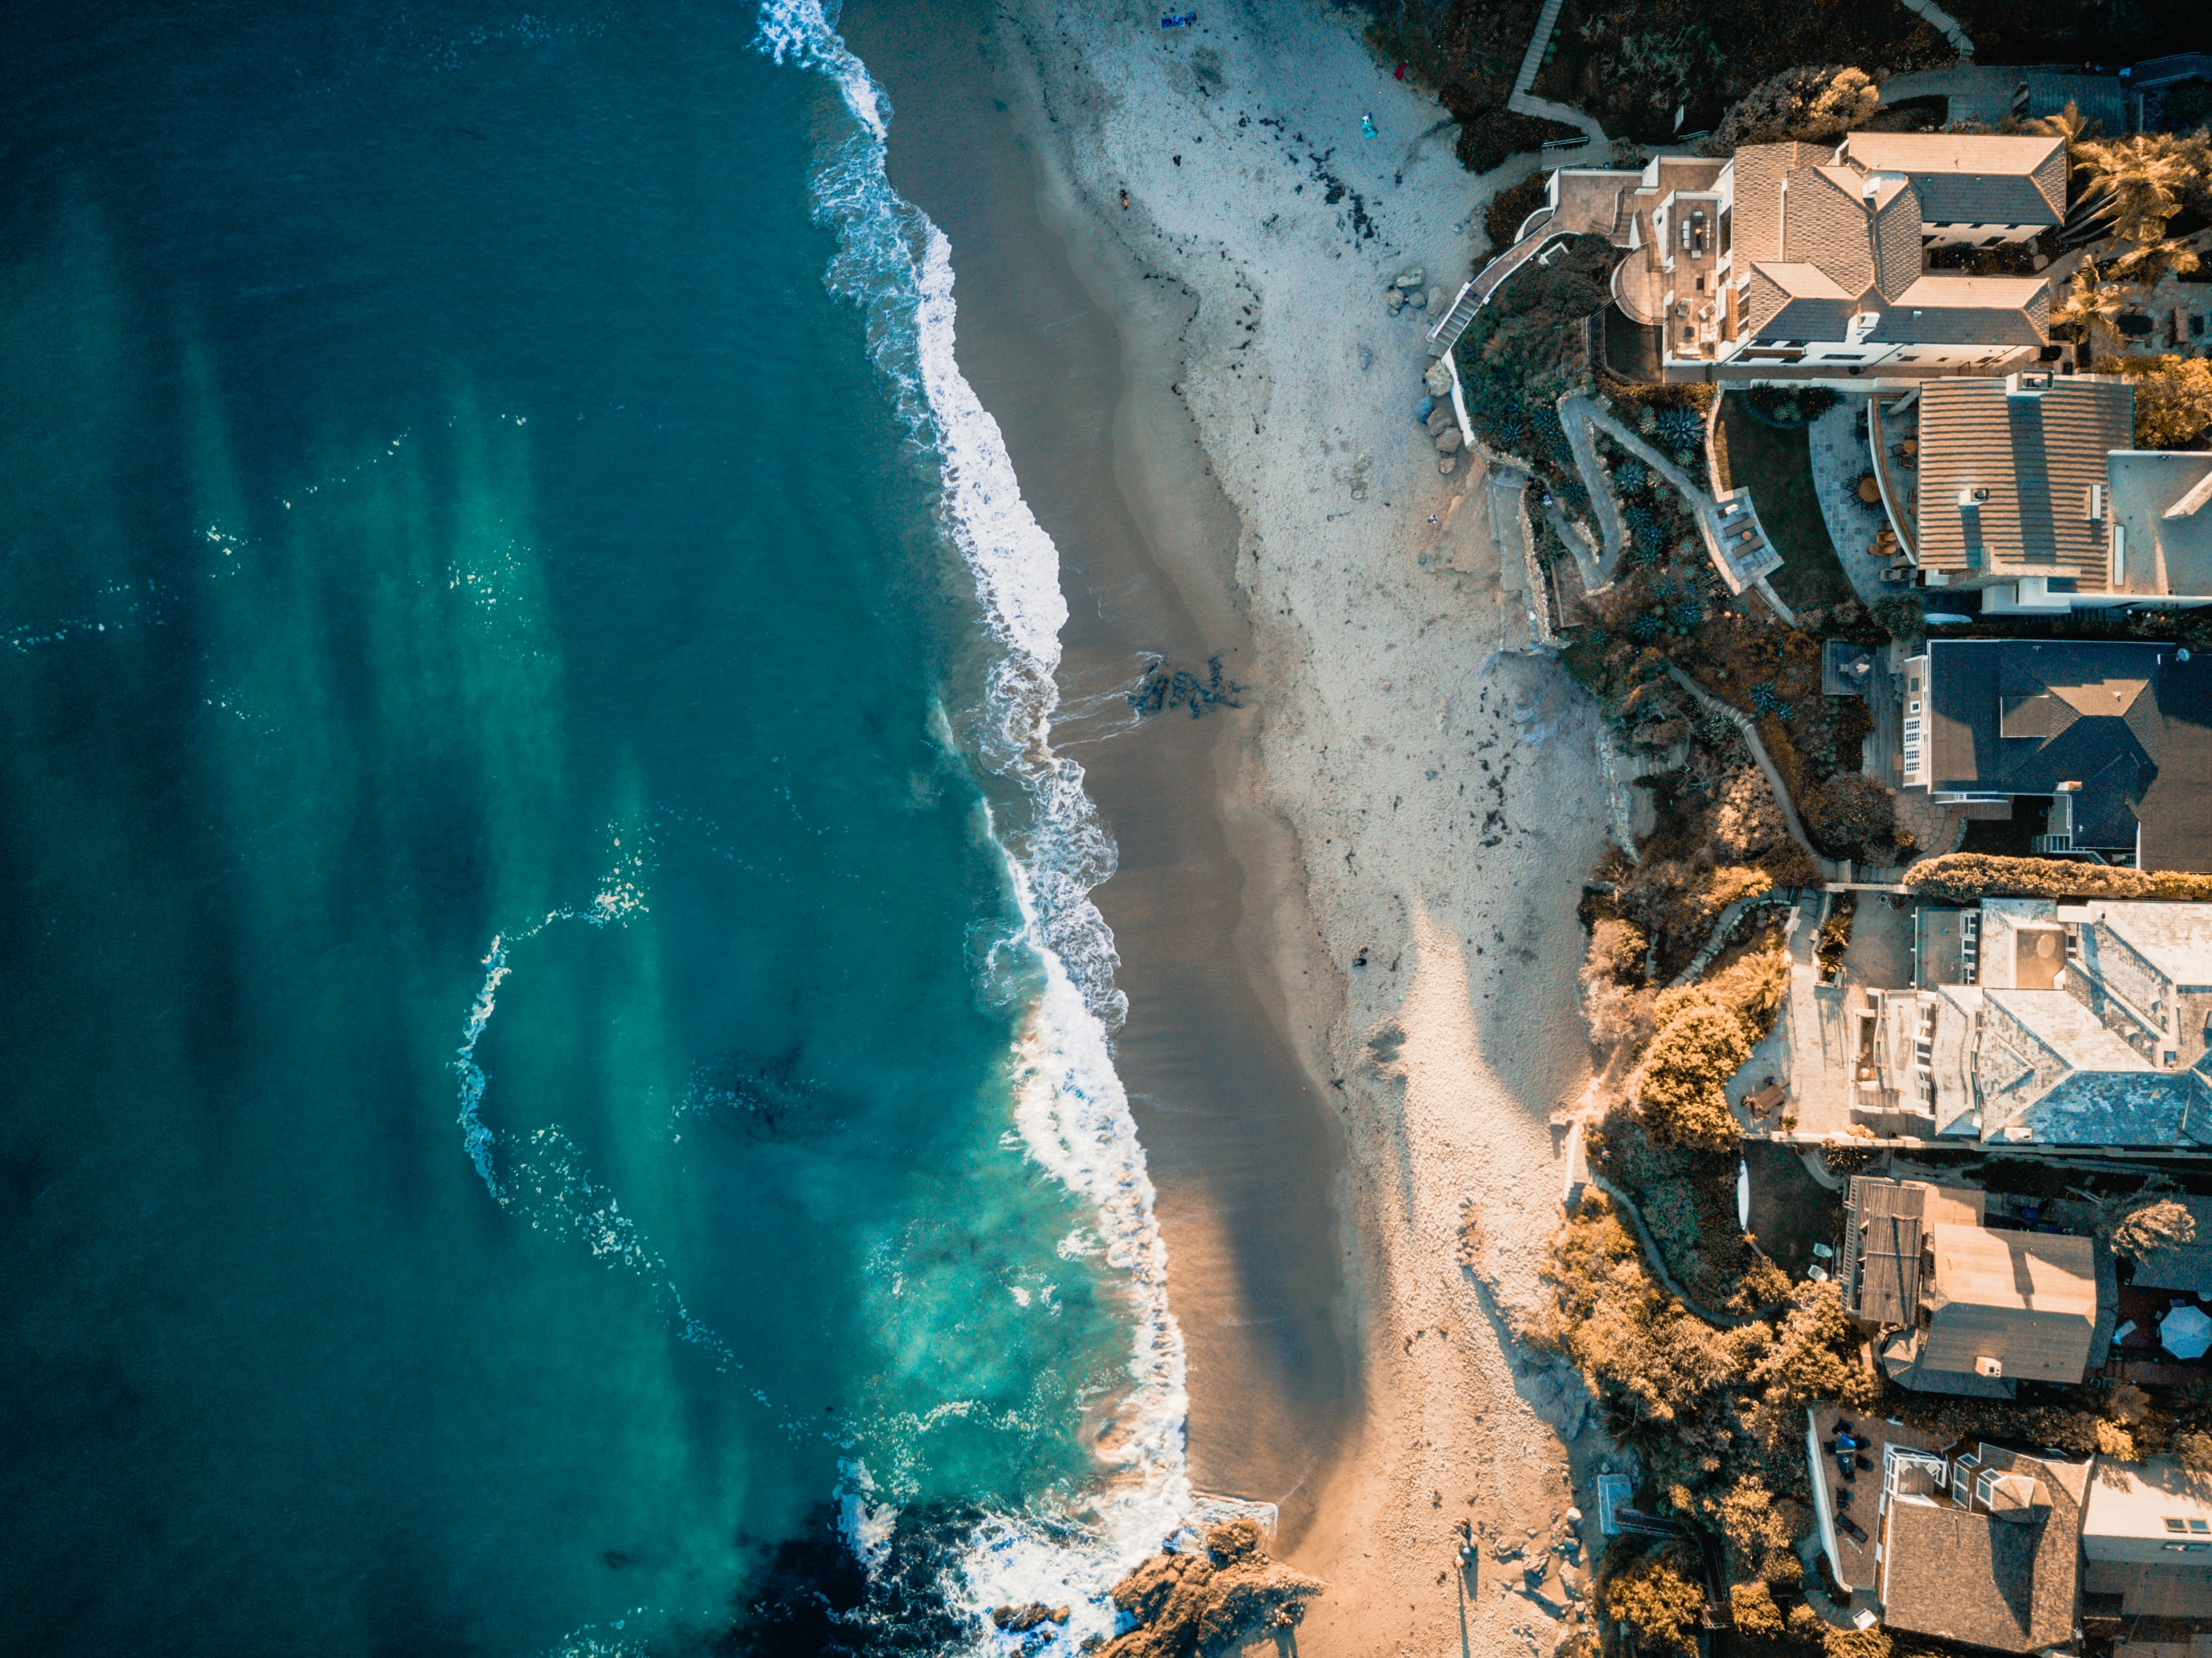 Drone aerial view of the ocean, sand beach, and houses on the Laguna Beach